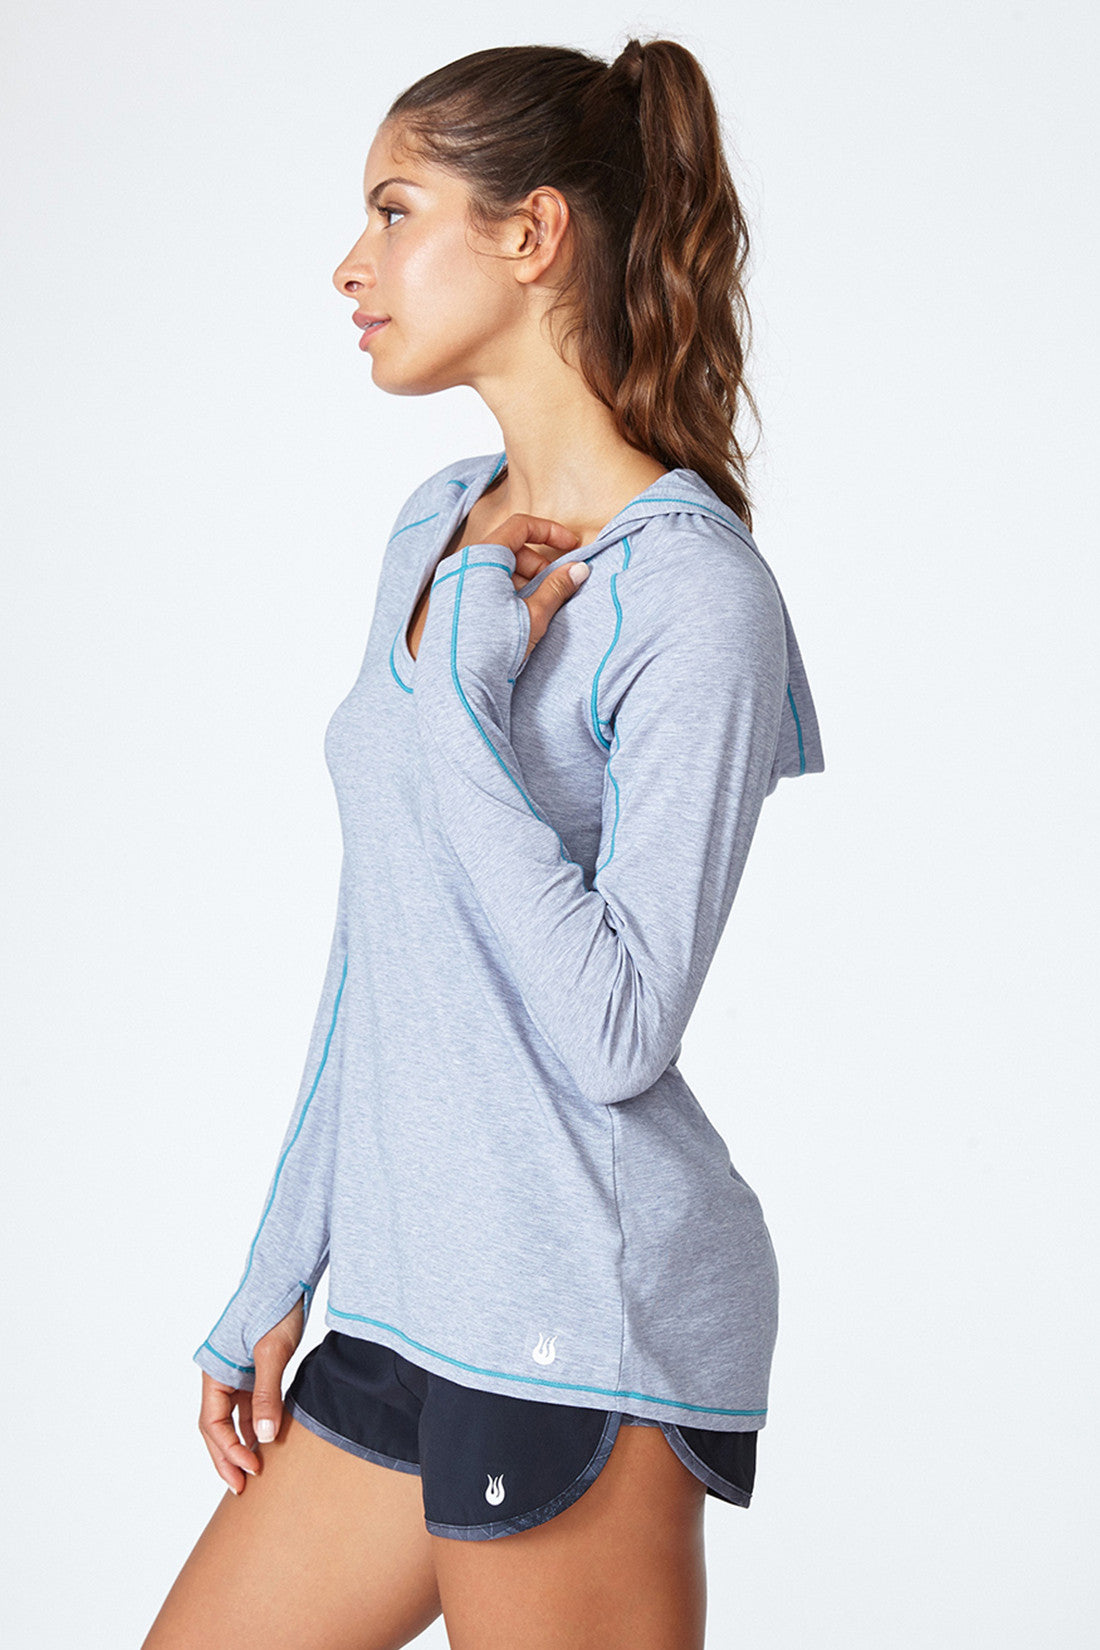 Cut It Out Hoodie - Grey Heather